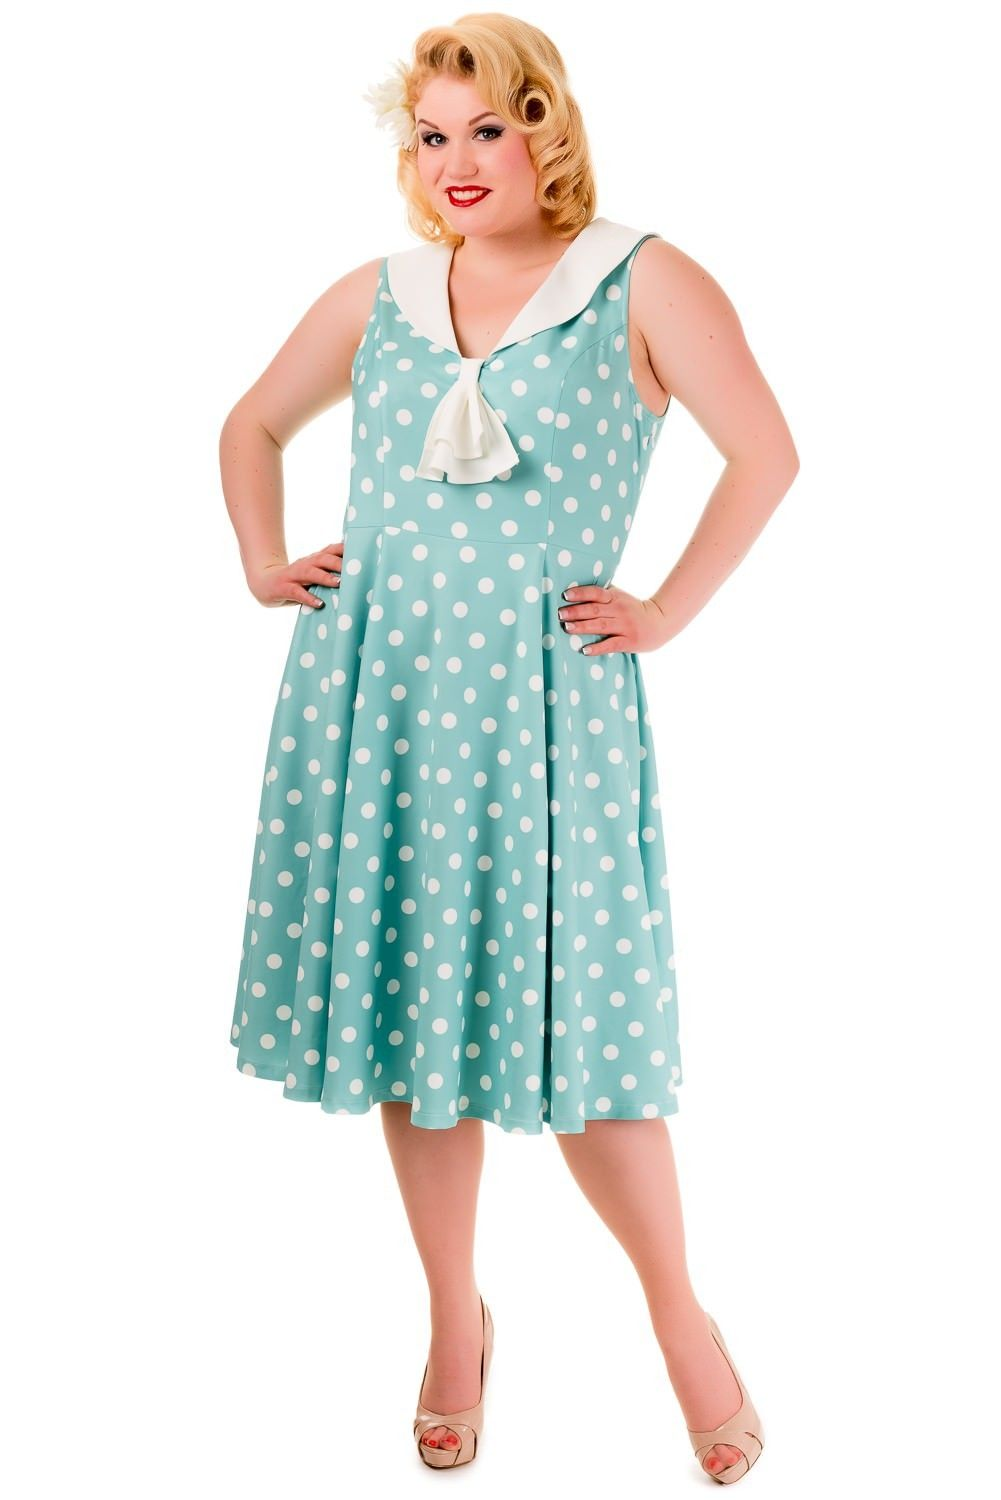 Pin Up Vintage Style Polka Dot Short Sleeve Party Dress - SOLD OUT ...